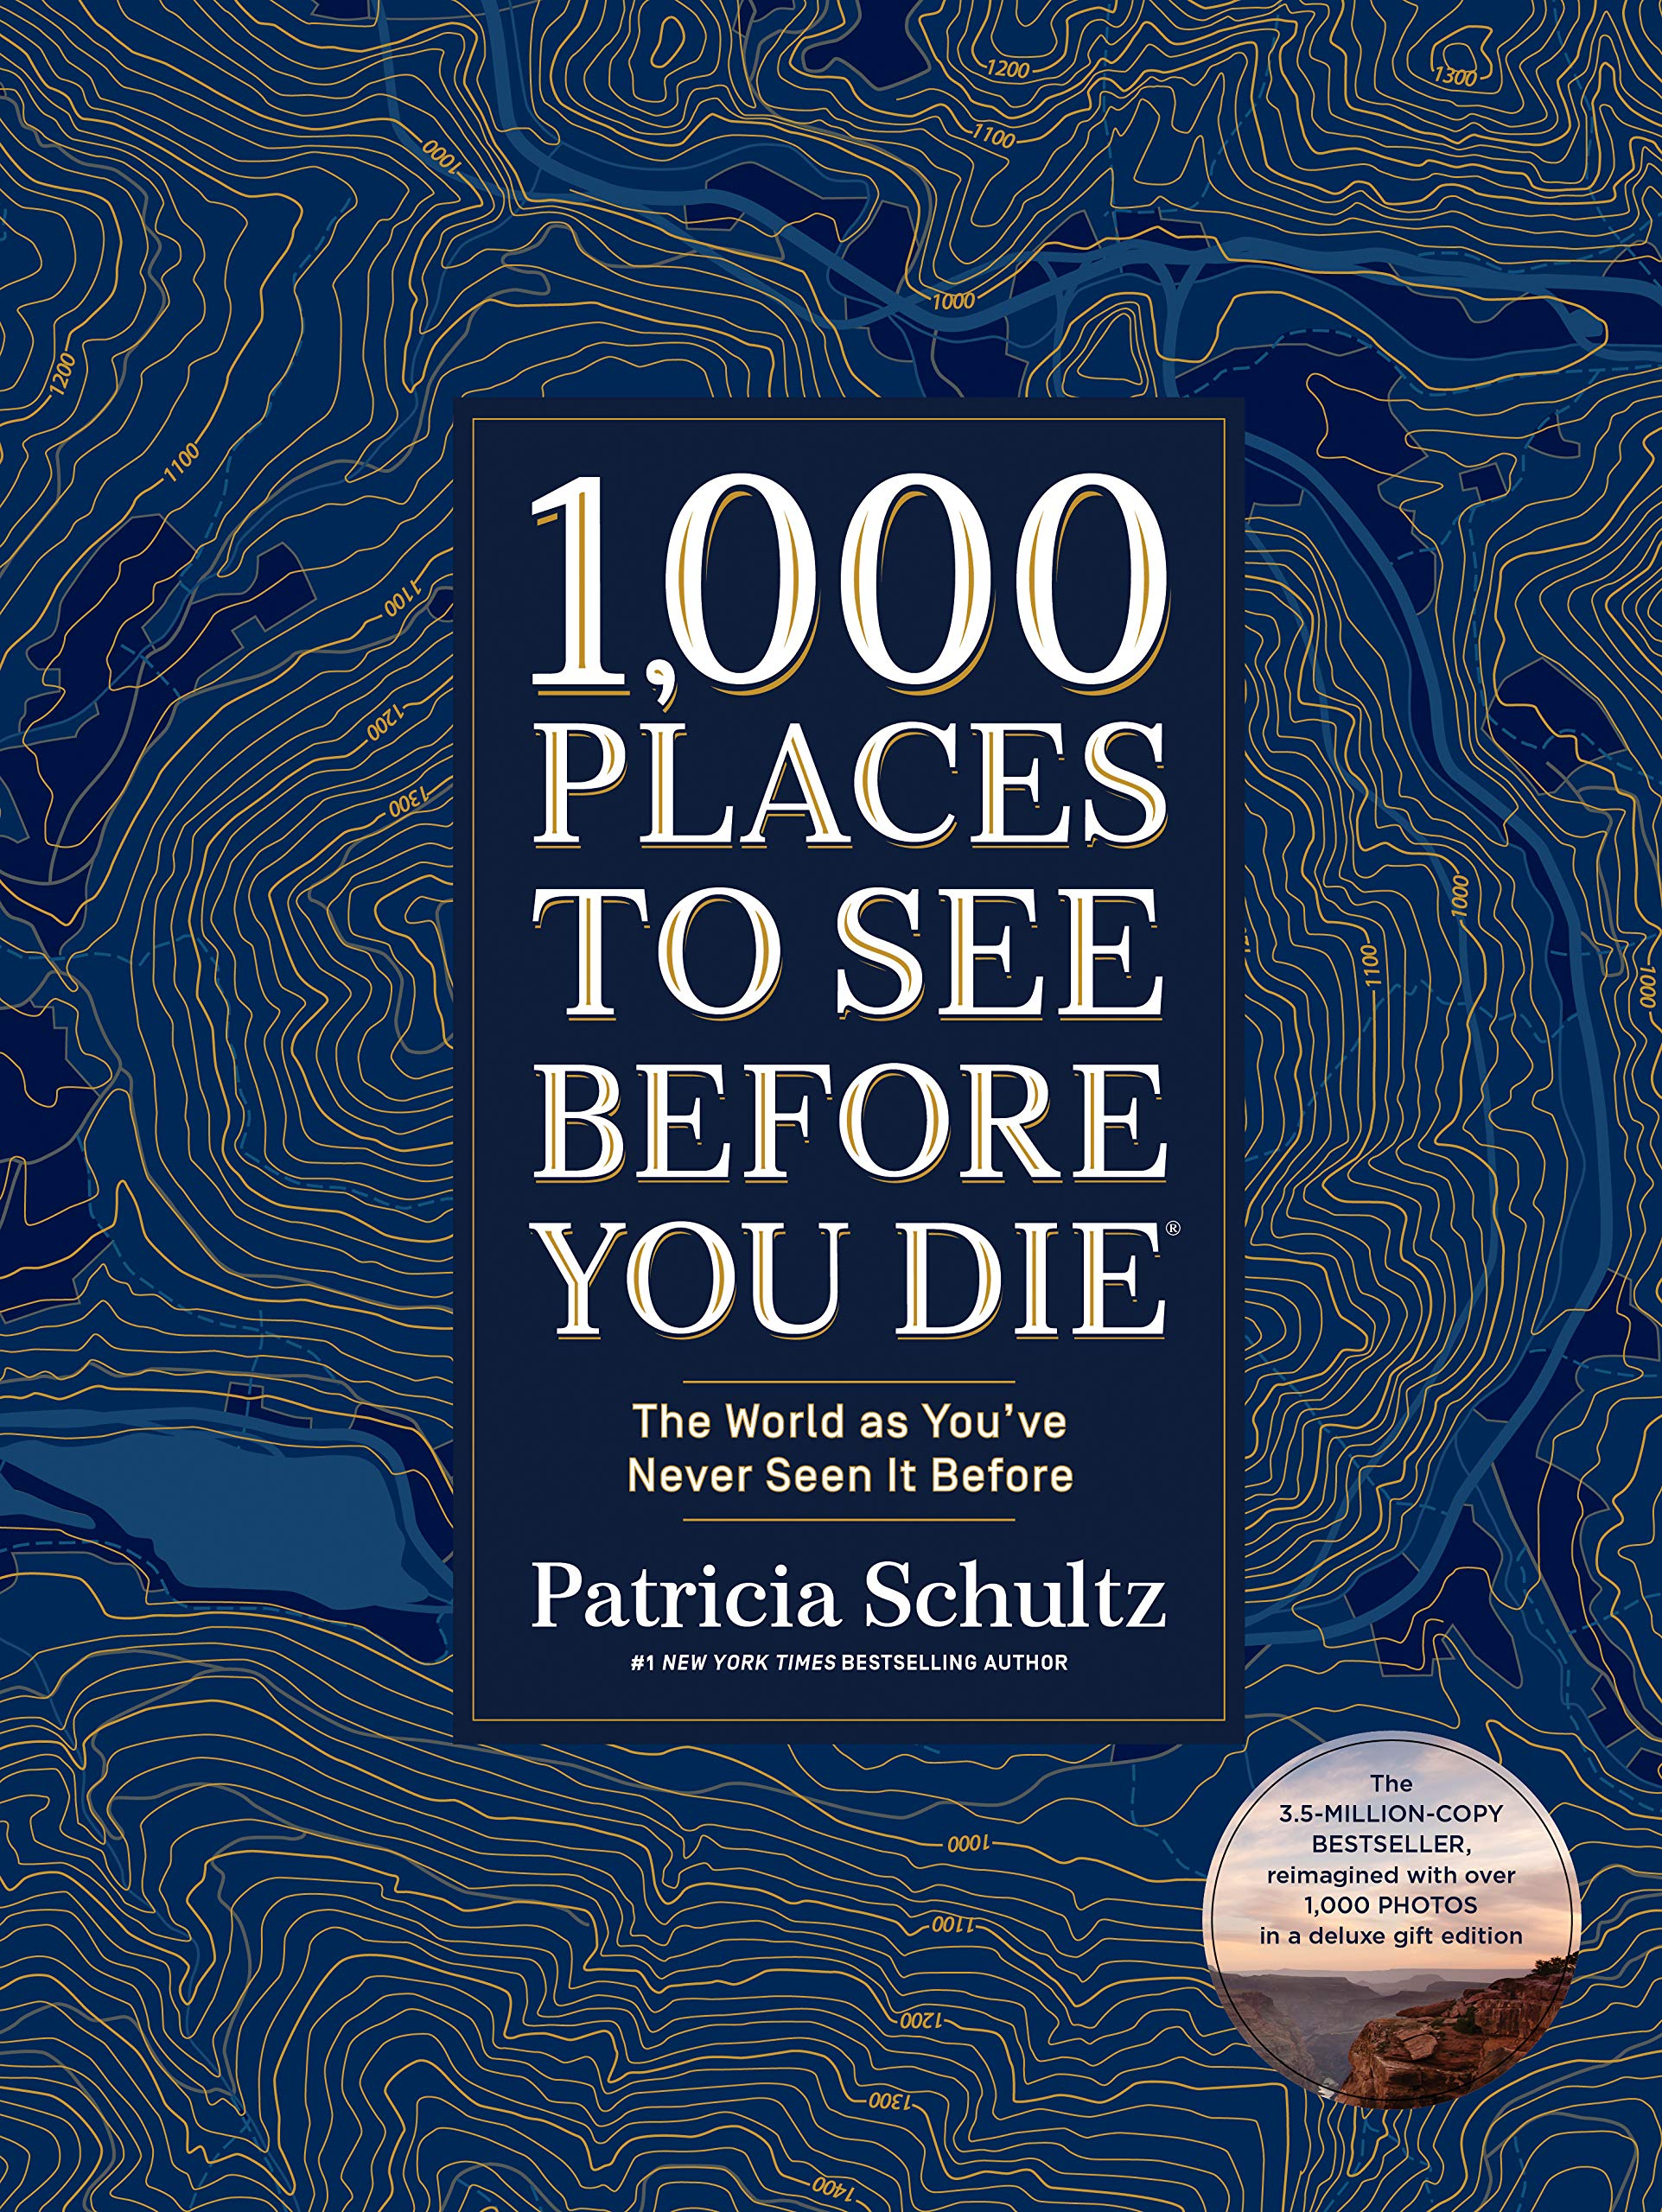 1,000 Places to See Before You Die (Deluxe Edition): The World as You've Never Seen It Before by Artisan